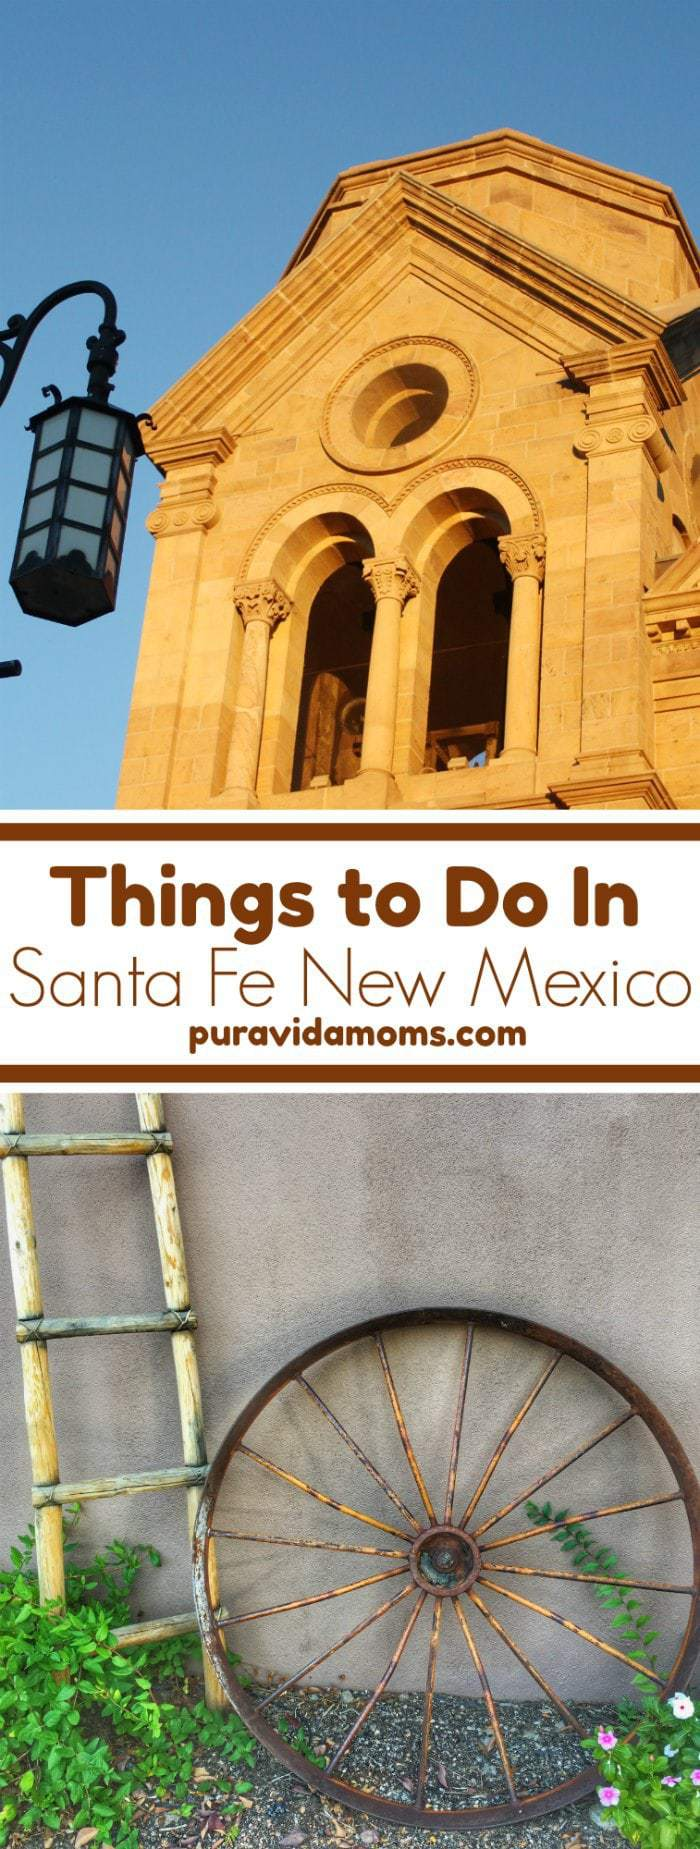 Things to do in Santa Fe New Mexico